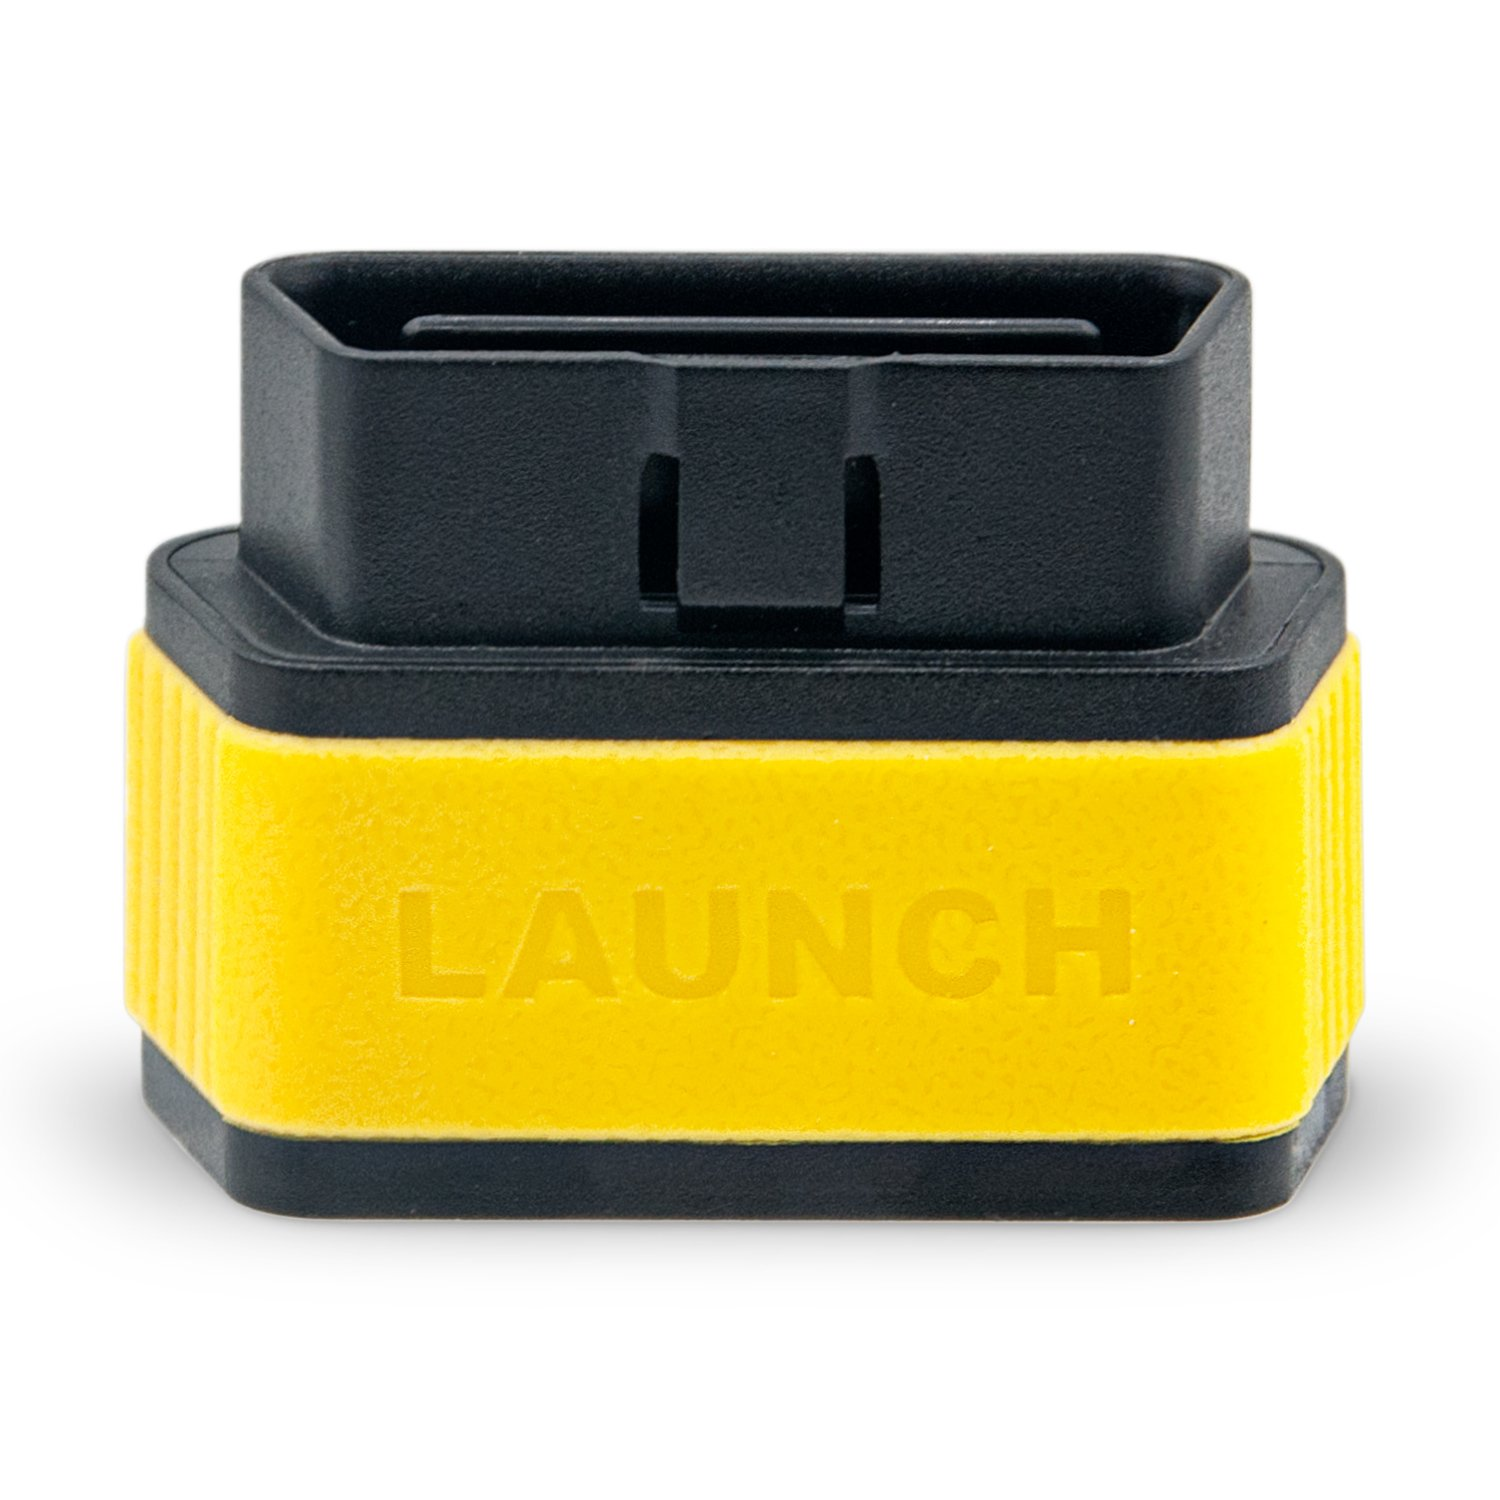 Launch X431 EasyDiag 2.0 Diagnostic Tool with Engine, ABS, SRS, Transmission for Android & iOS Update Online